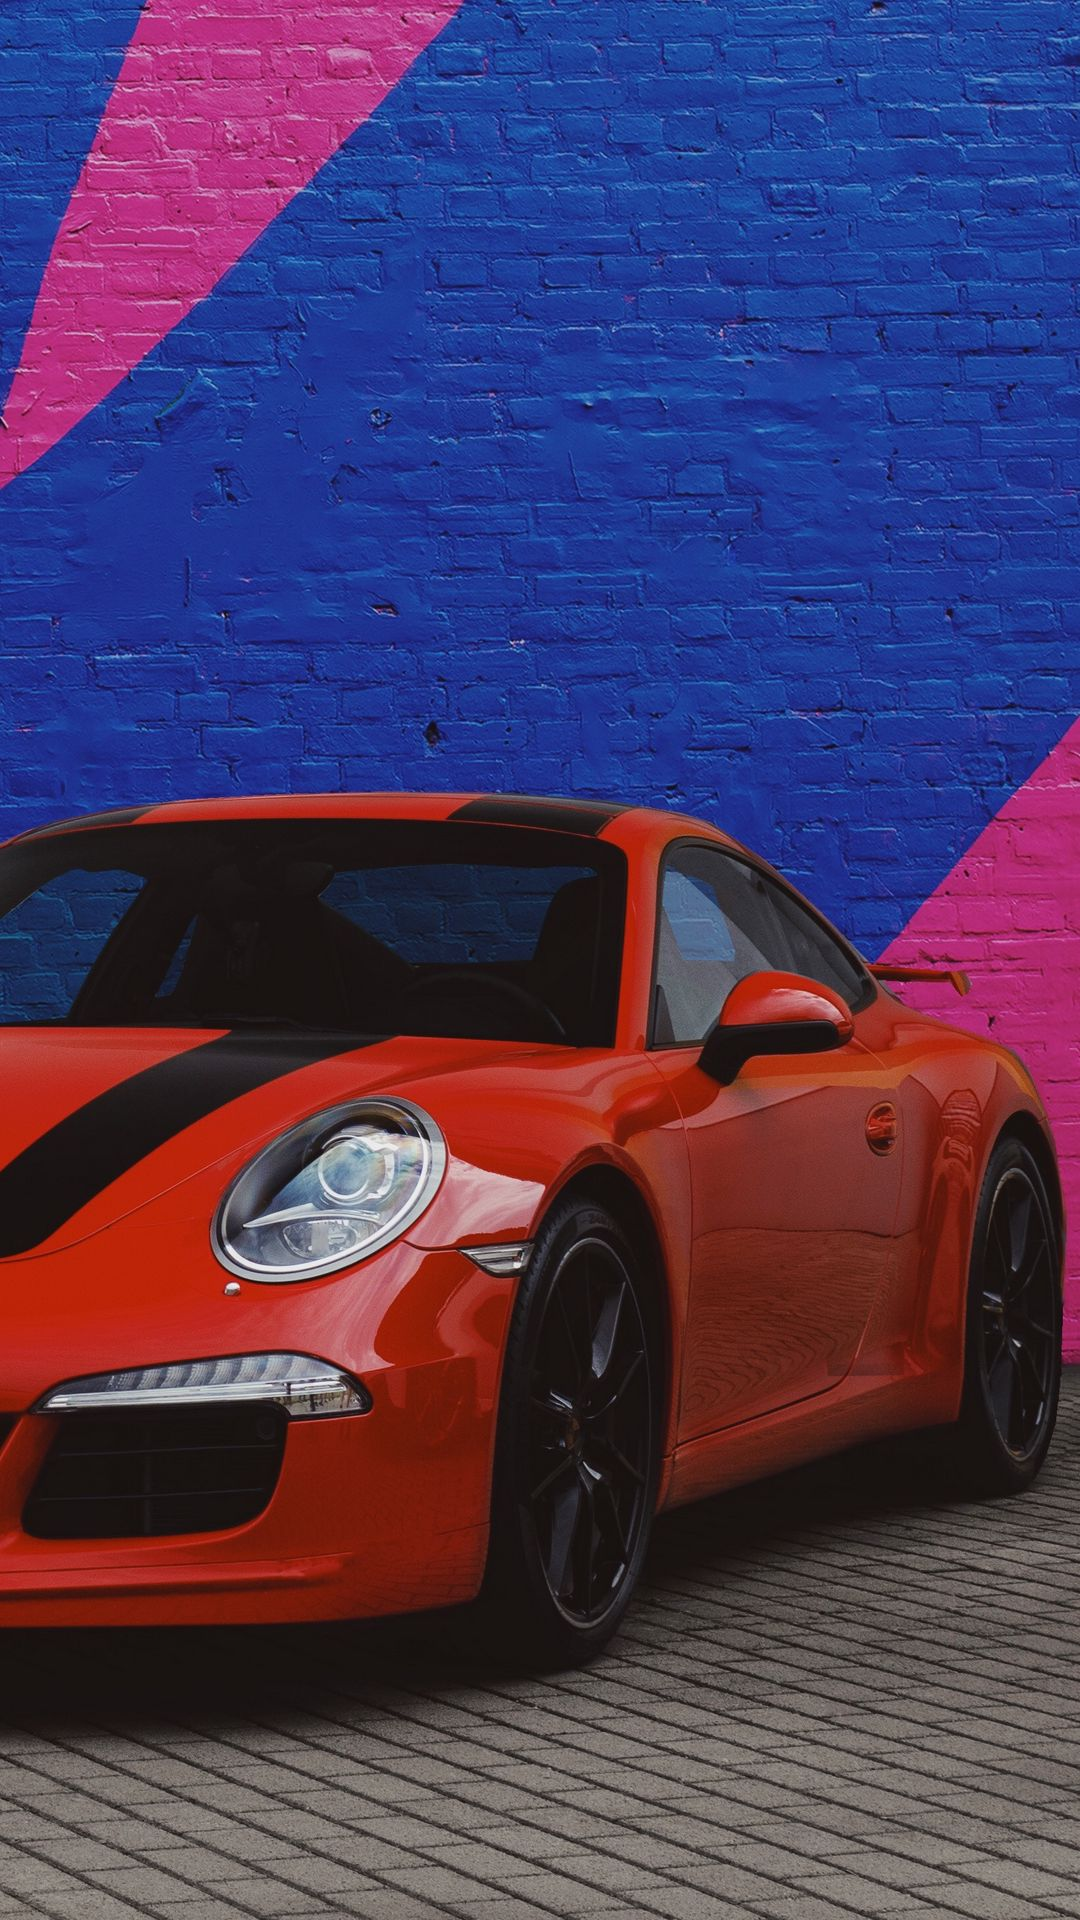 Porsche Cayman GT4 Car Wallpapers Download for Background